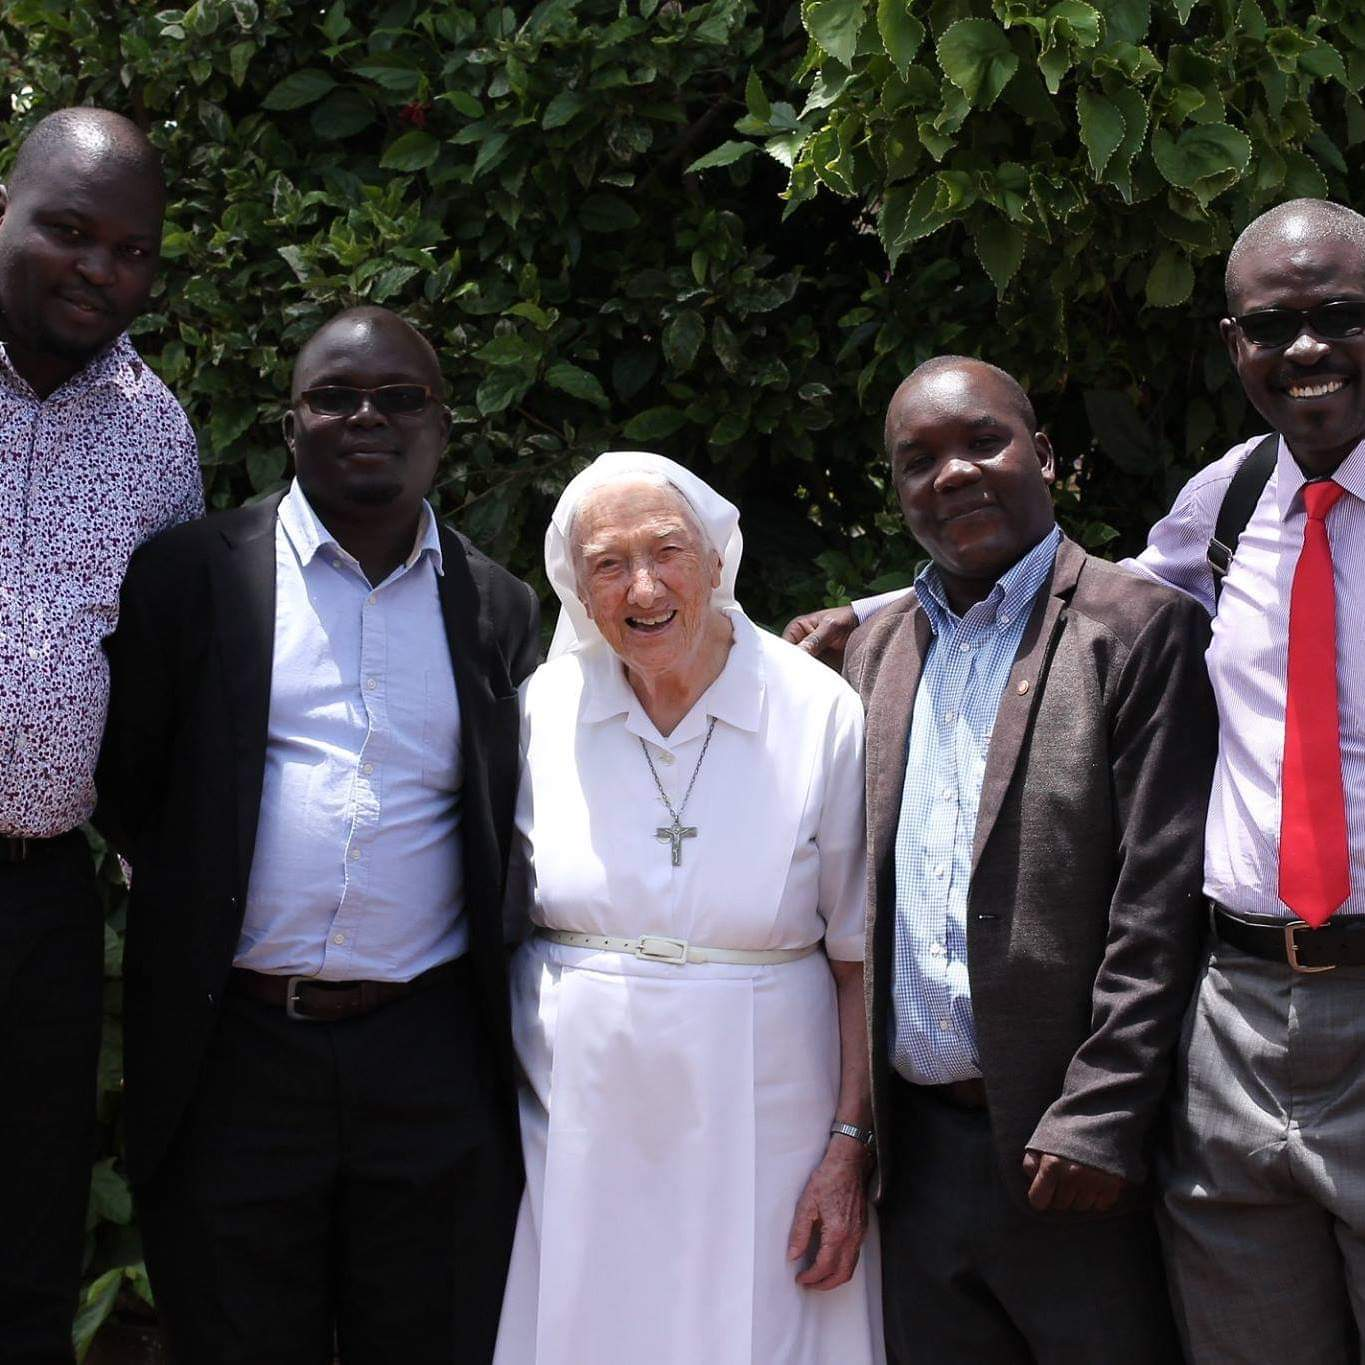 The former Headmistress Sr.Veronica Landoro meets some Old Boys before she returned to Italy in 2017